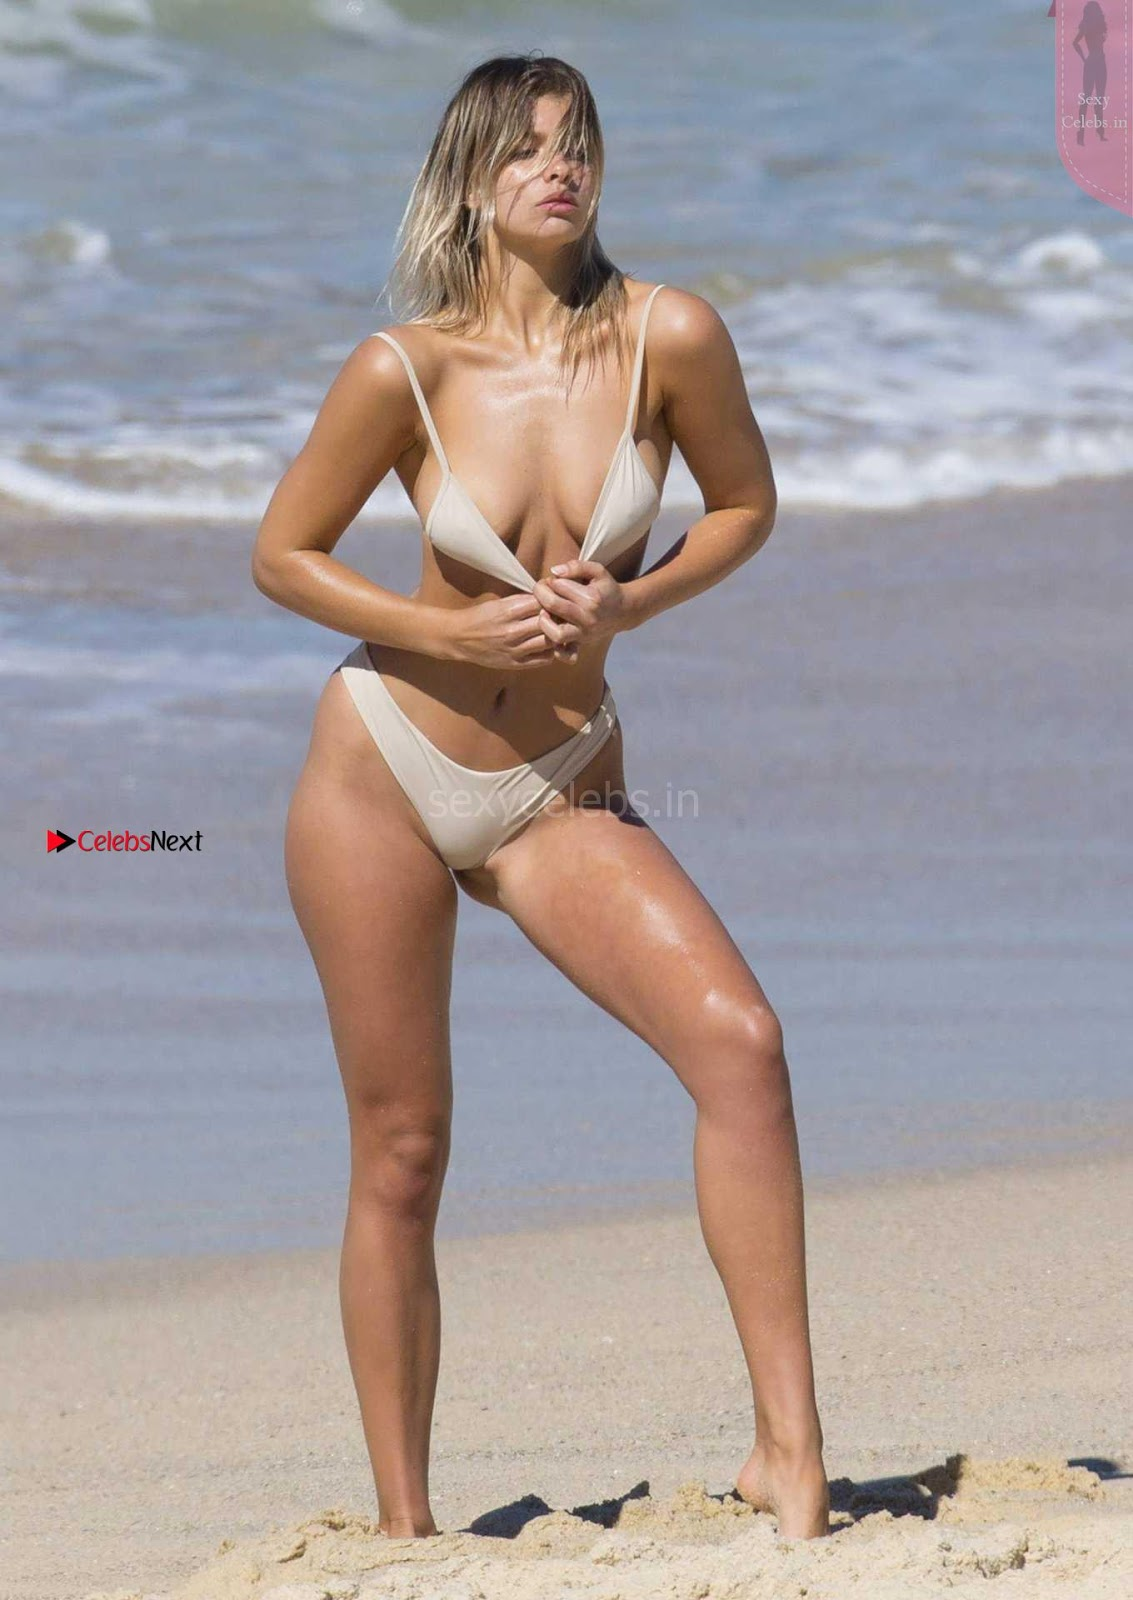 Kristina Mendonca Sexy tiny thongs Bikini Shoot WOW Sexy ass Beautiful Blond